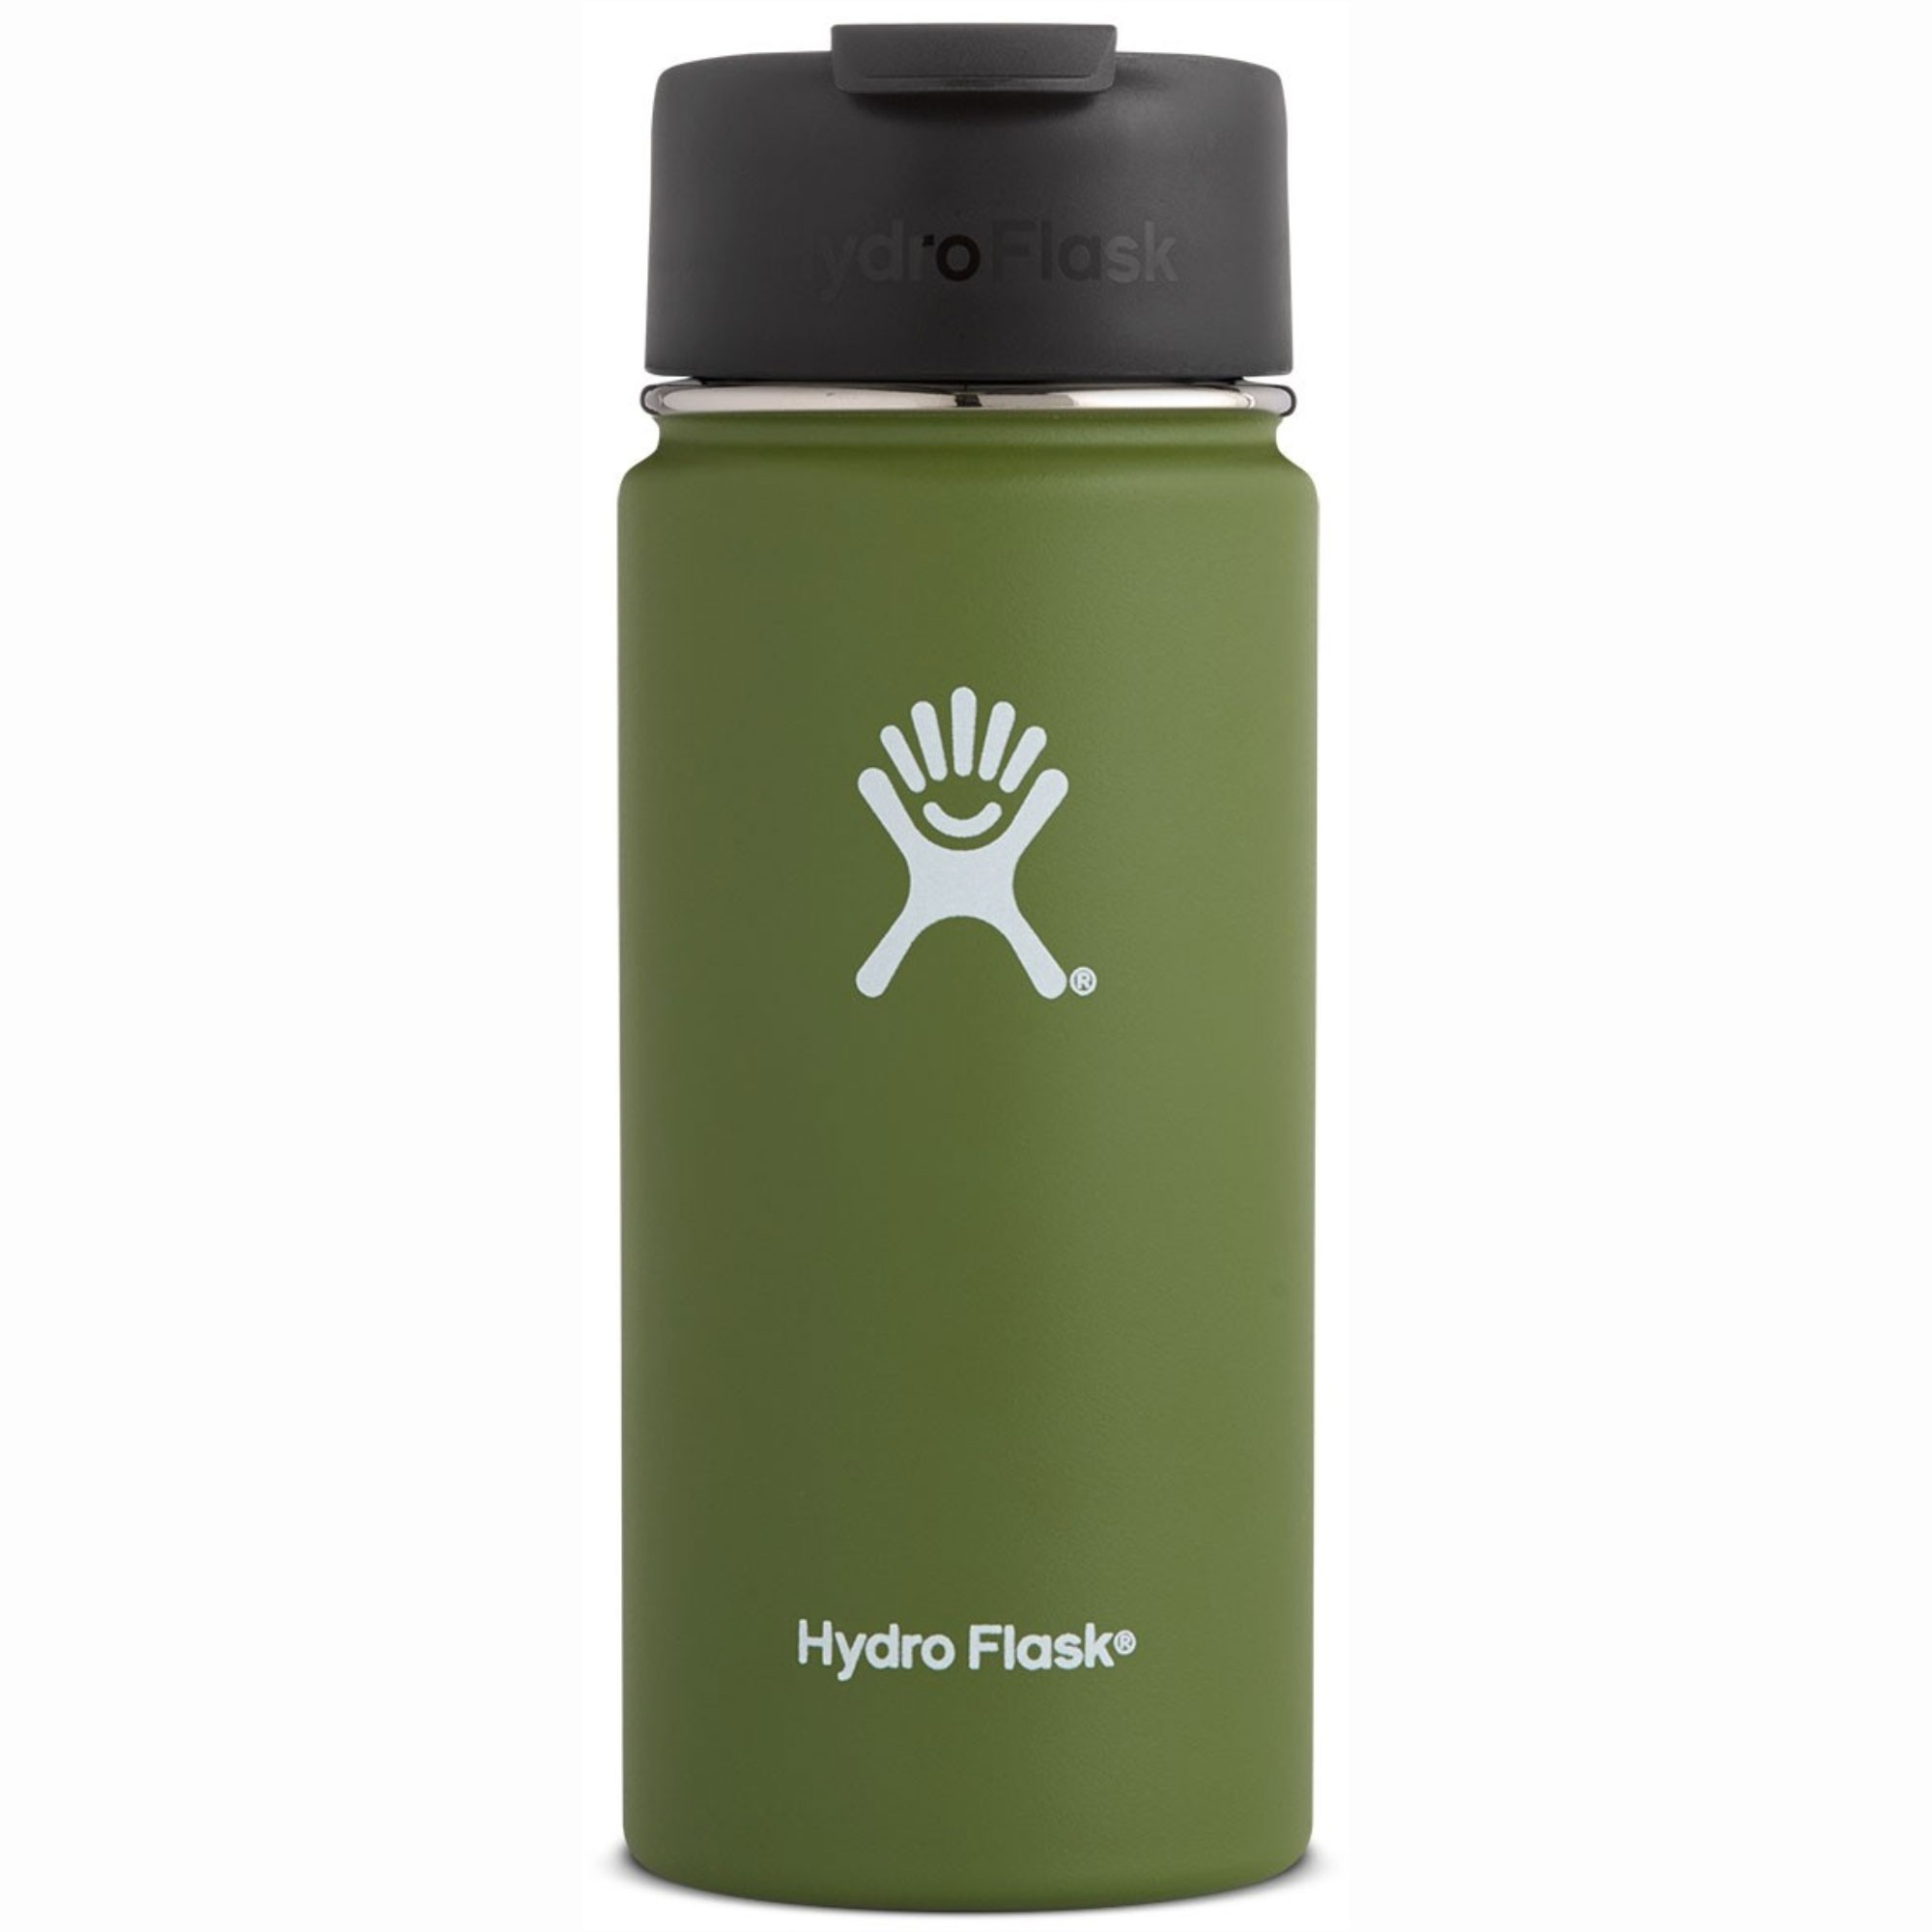 HYDRO FLASK - 16oz Wide Mouth Flask - Olive